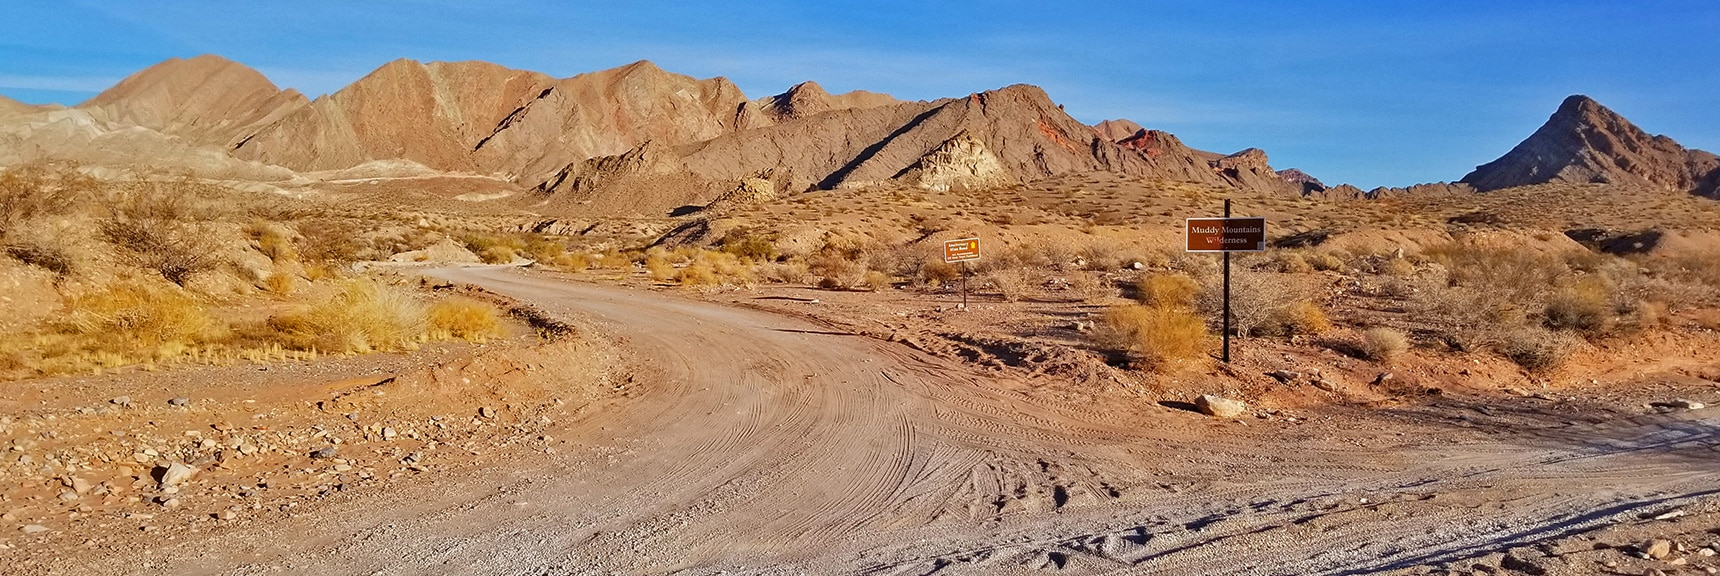 1/8th Mile Up the Road Anniversary Mine Rd Splits to the Left   Anniversary Narrows   Muddy Mountains Wilderness, Nevada